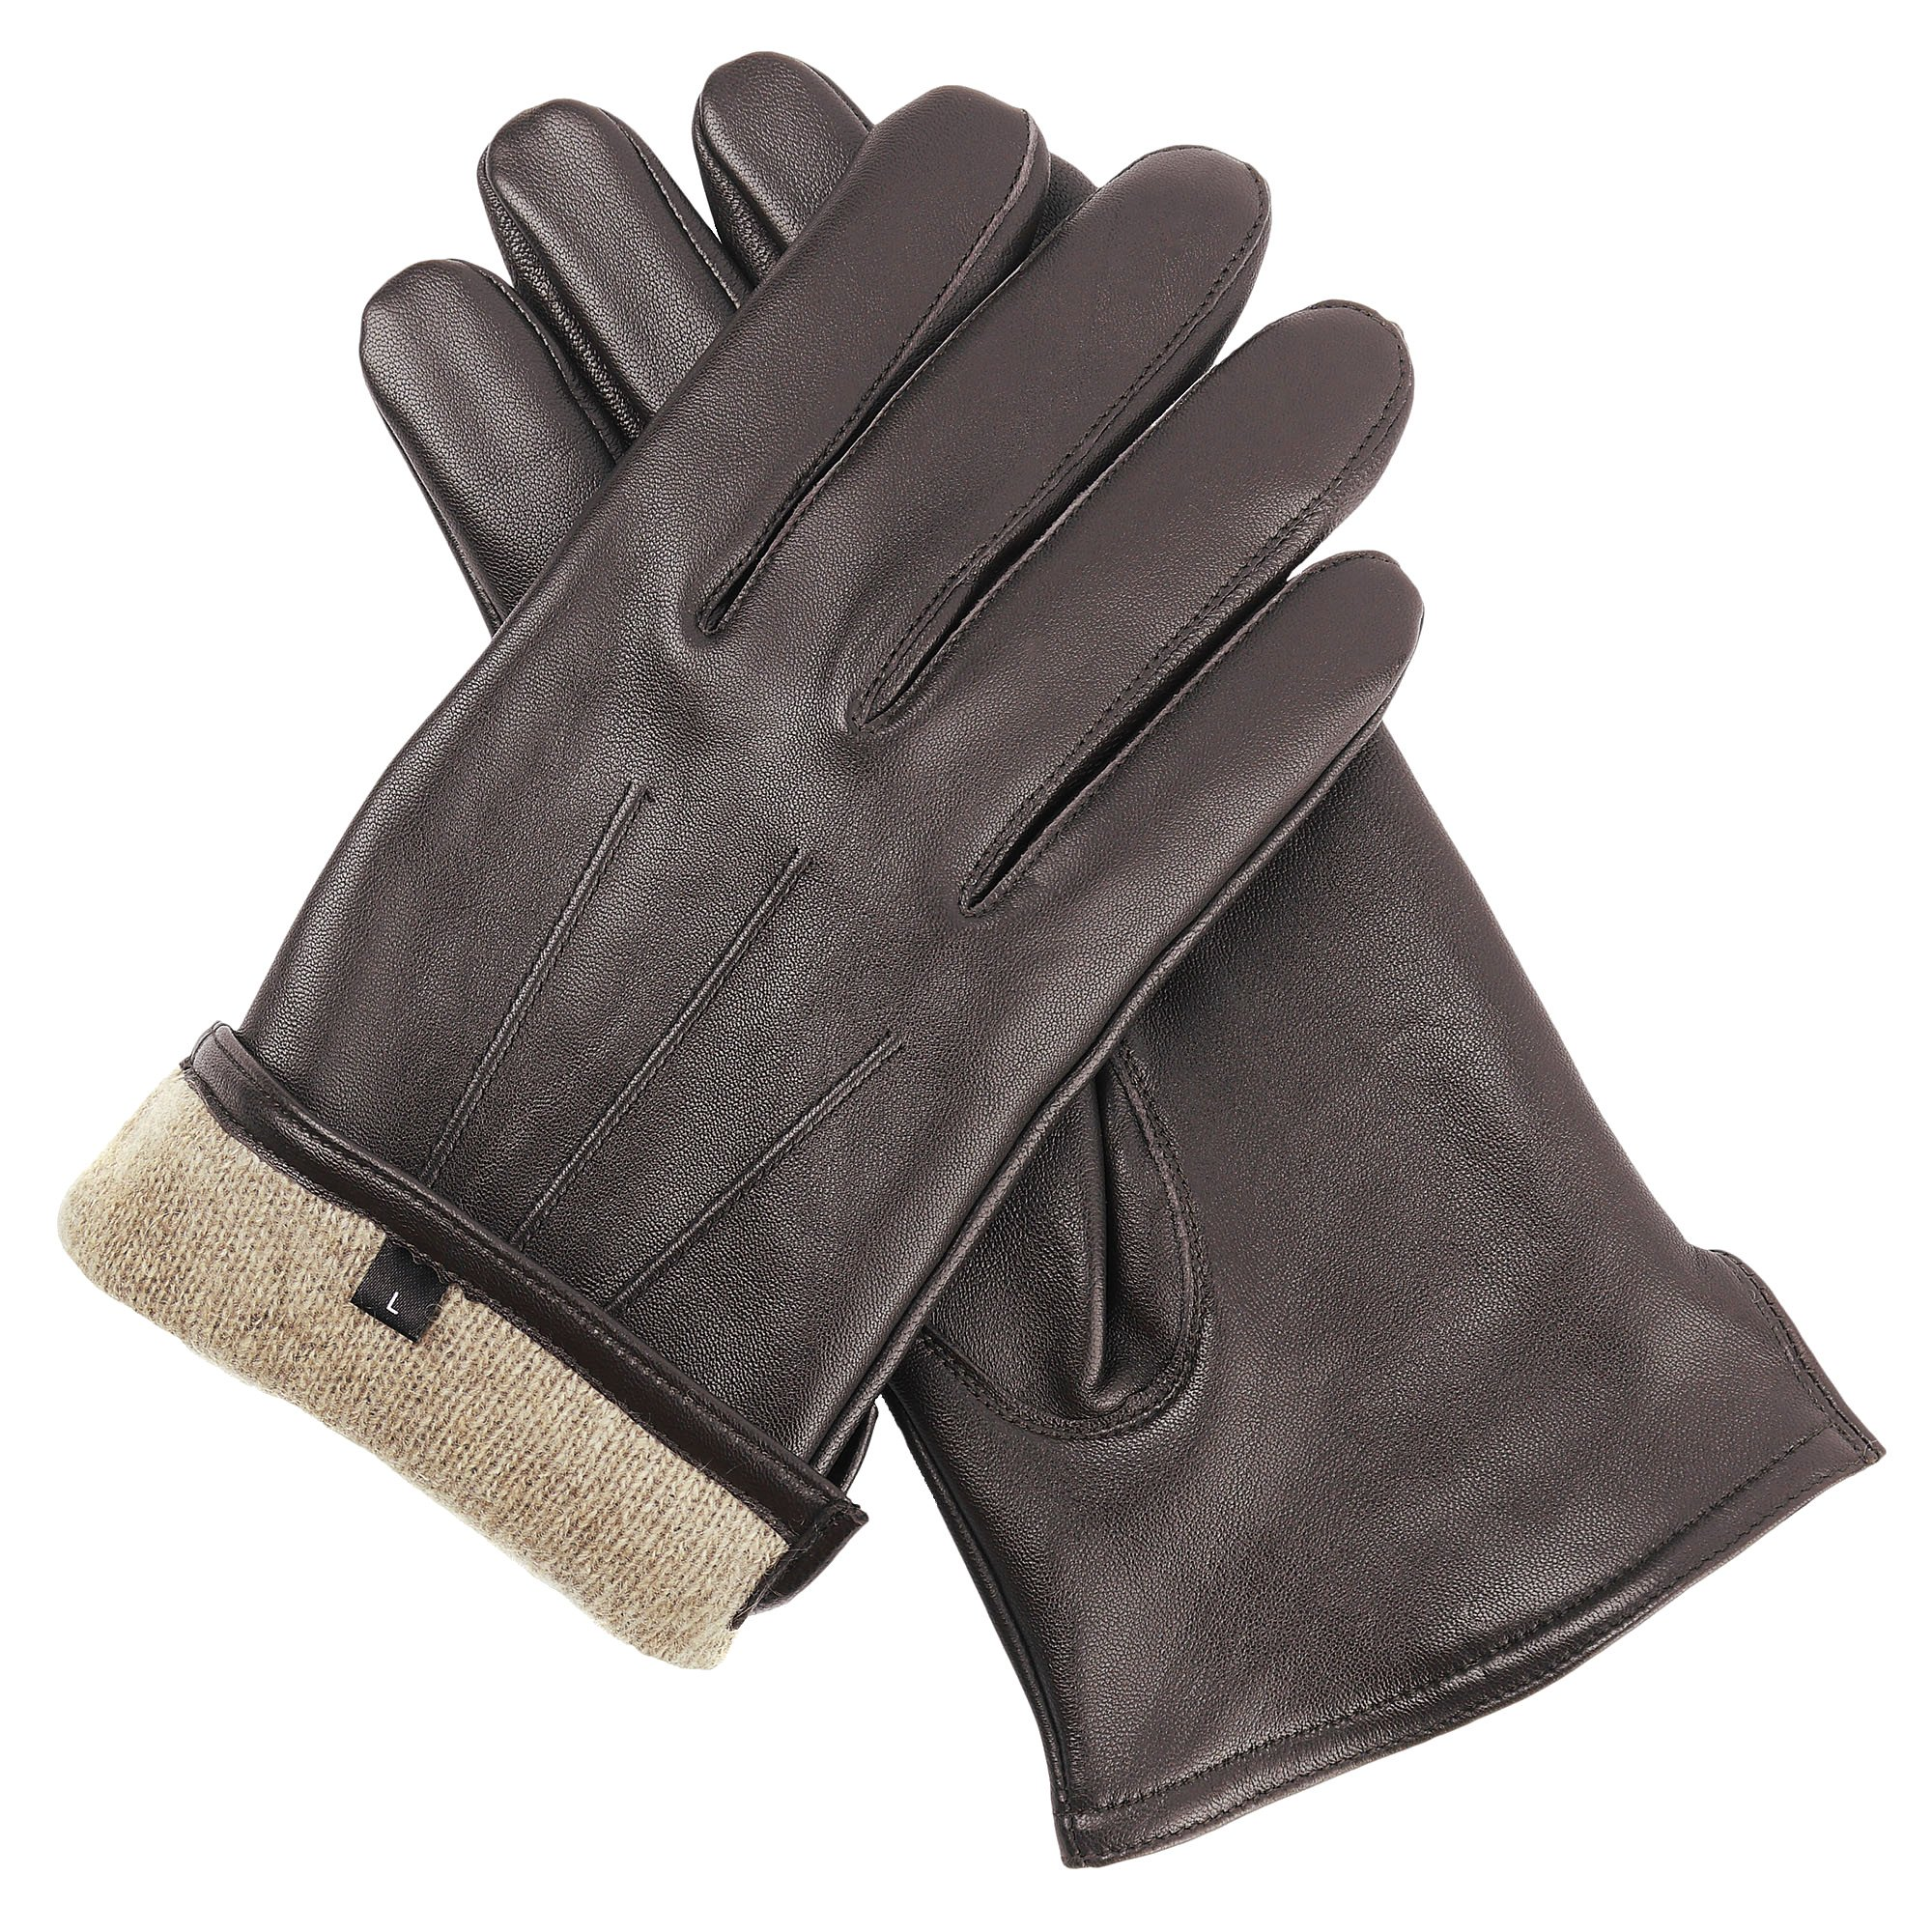 Candor and Class Men's Sheepskin Leather Gloves with Cashmere Lining (Brown, Medium)